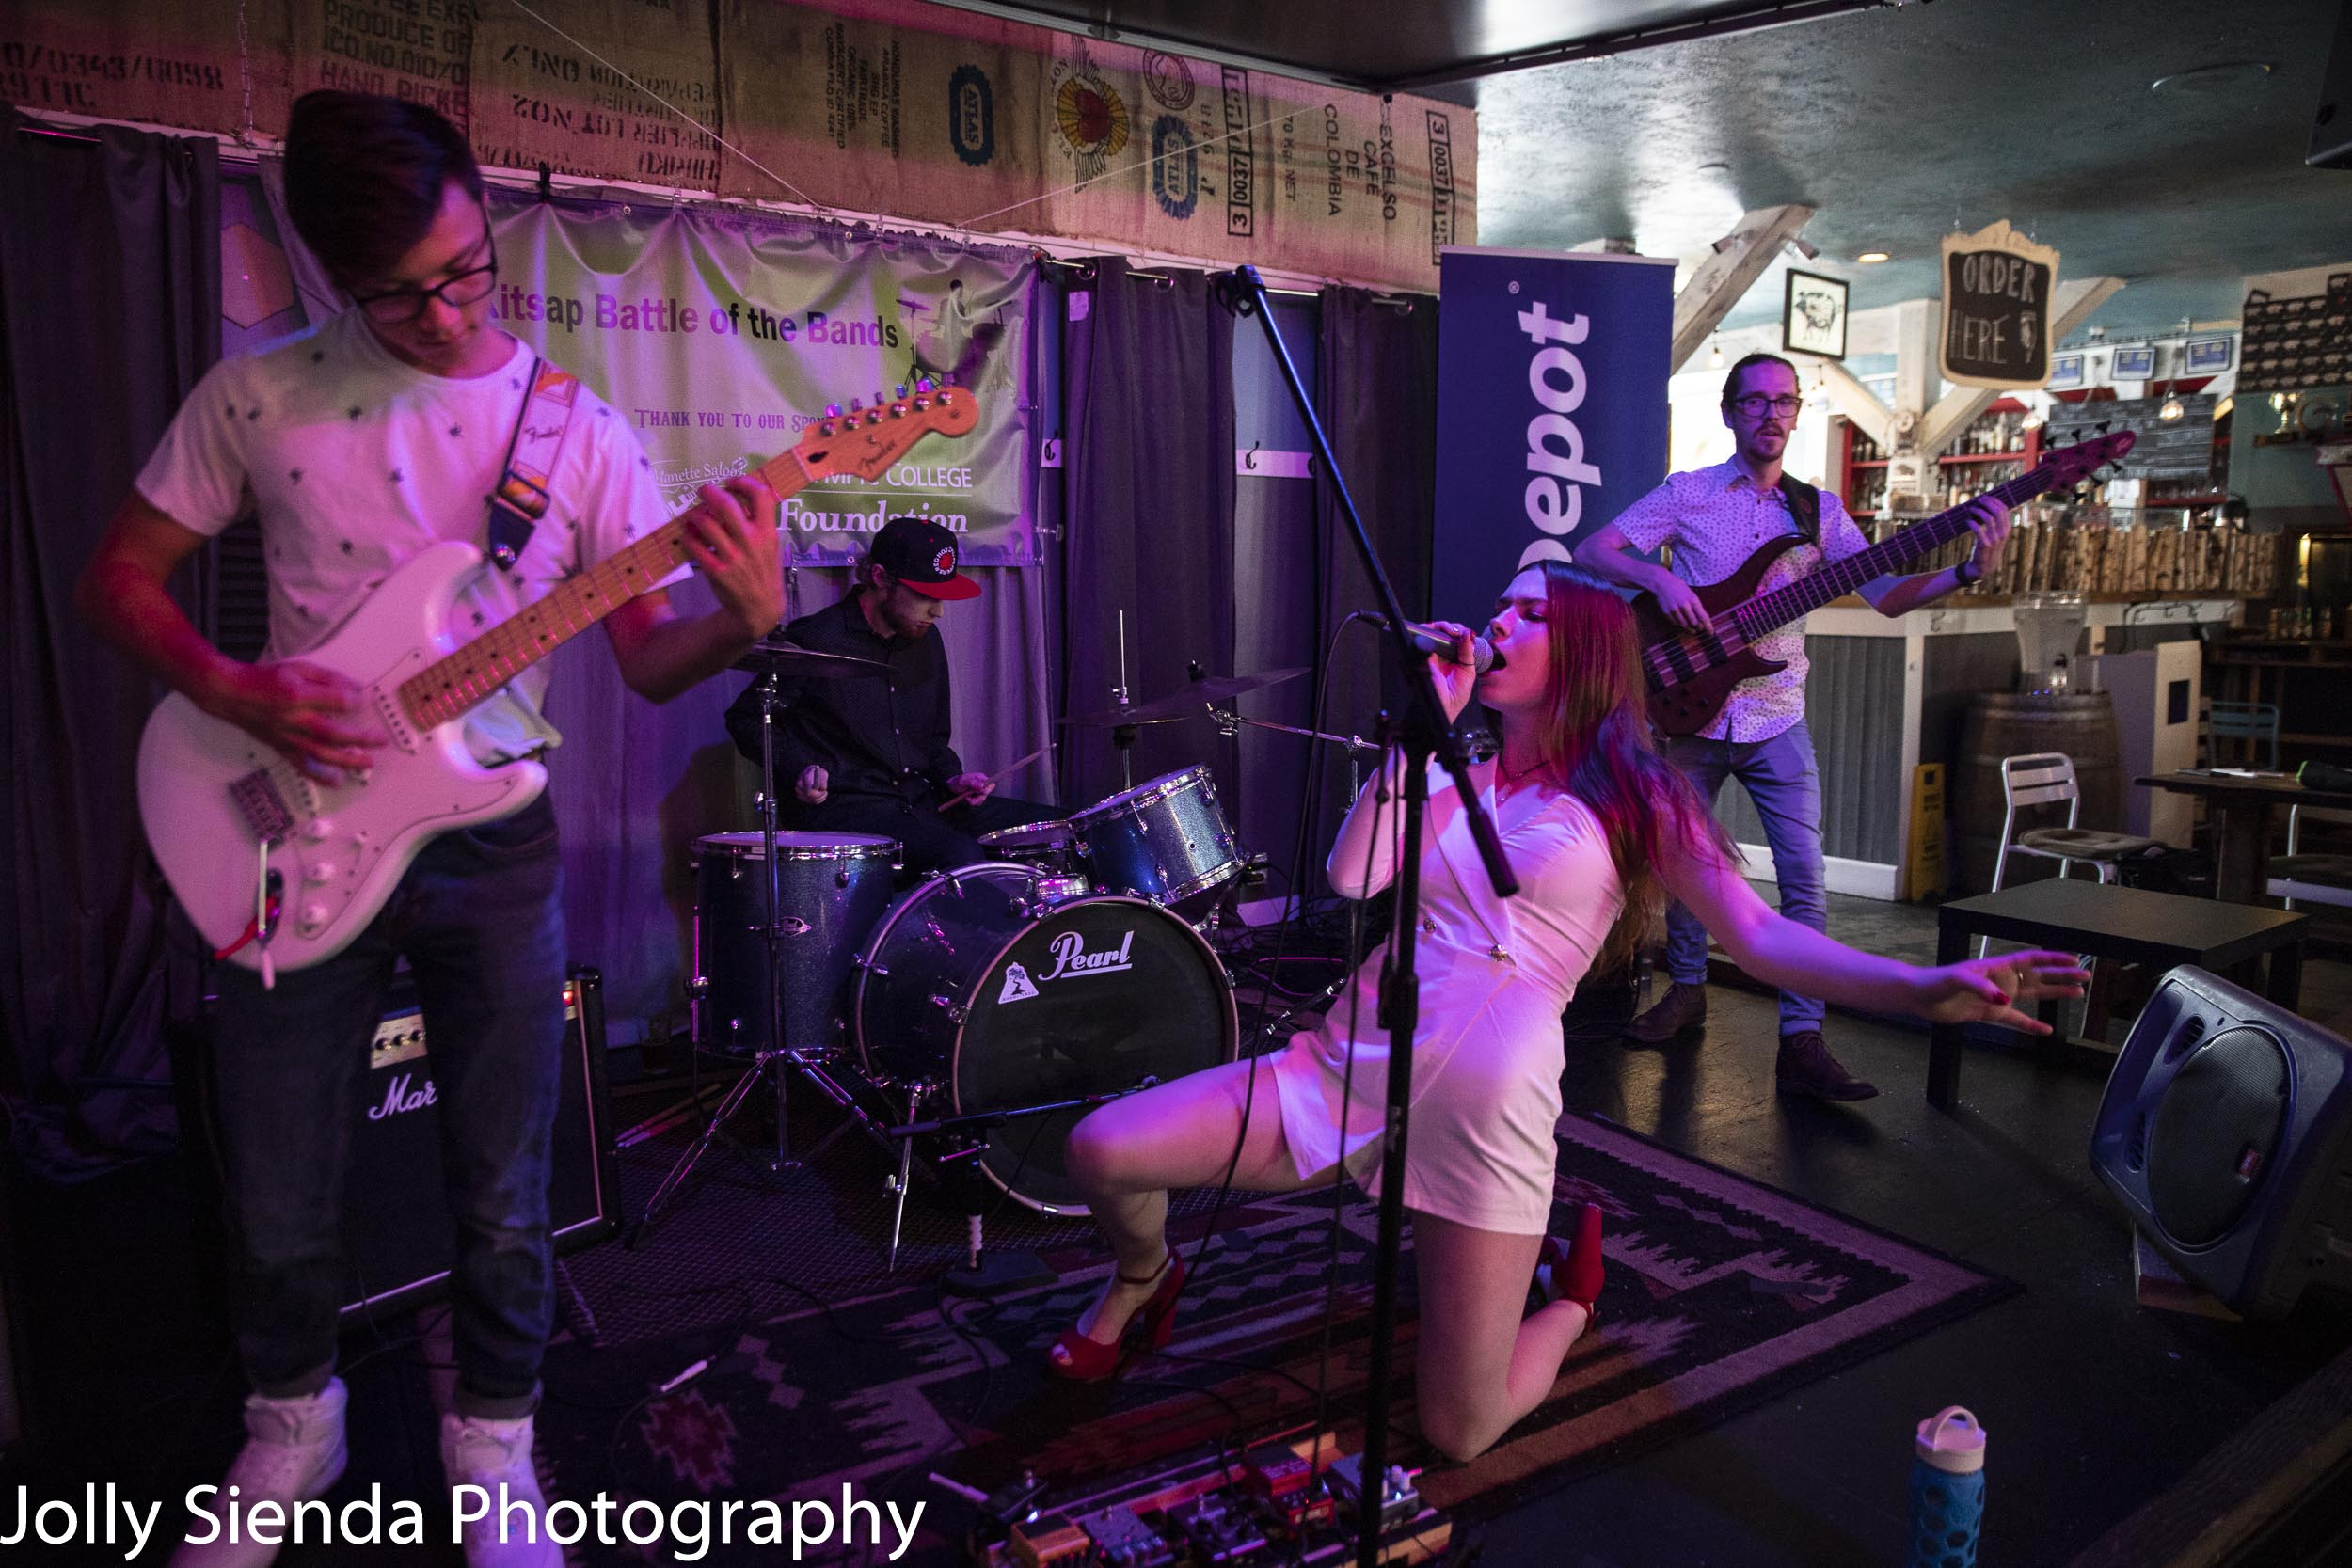 Zoe Morton Band, Kitsap Battle of the Bands, Slippery Pig, Jolly Sienda Photography